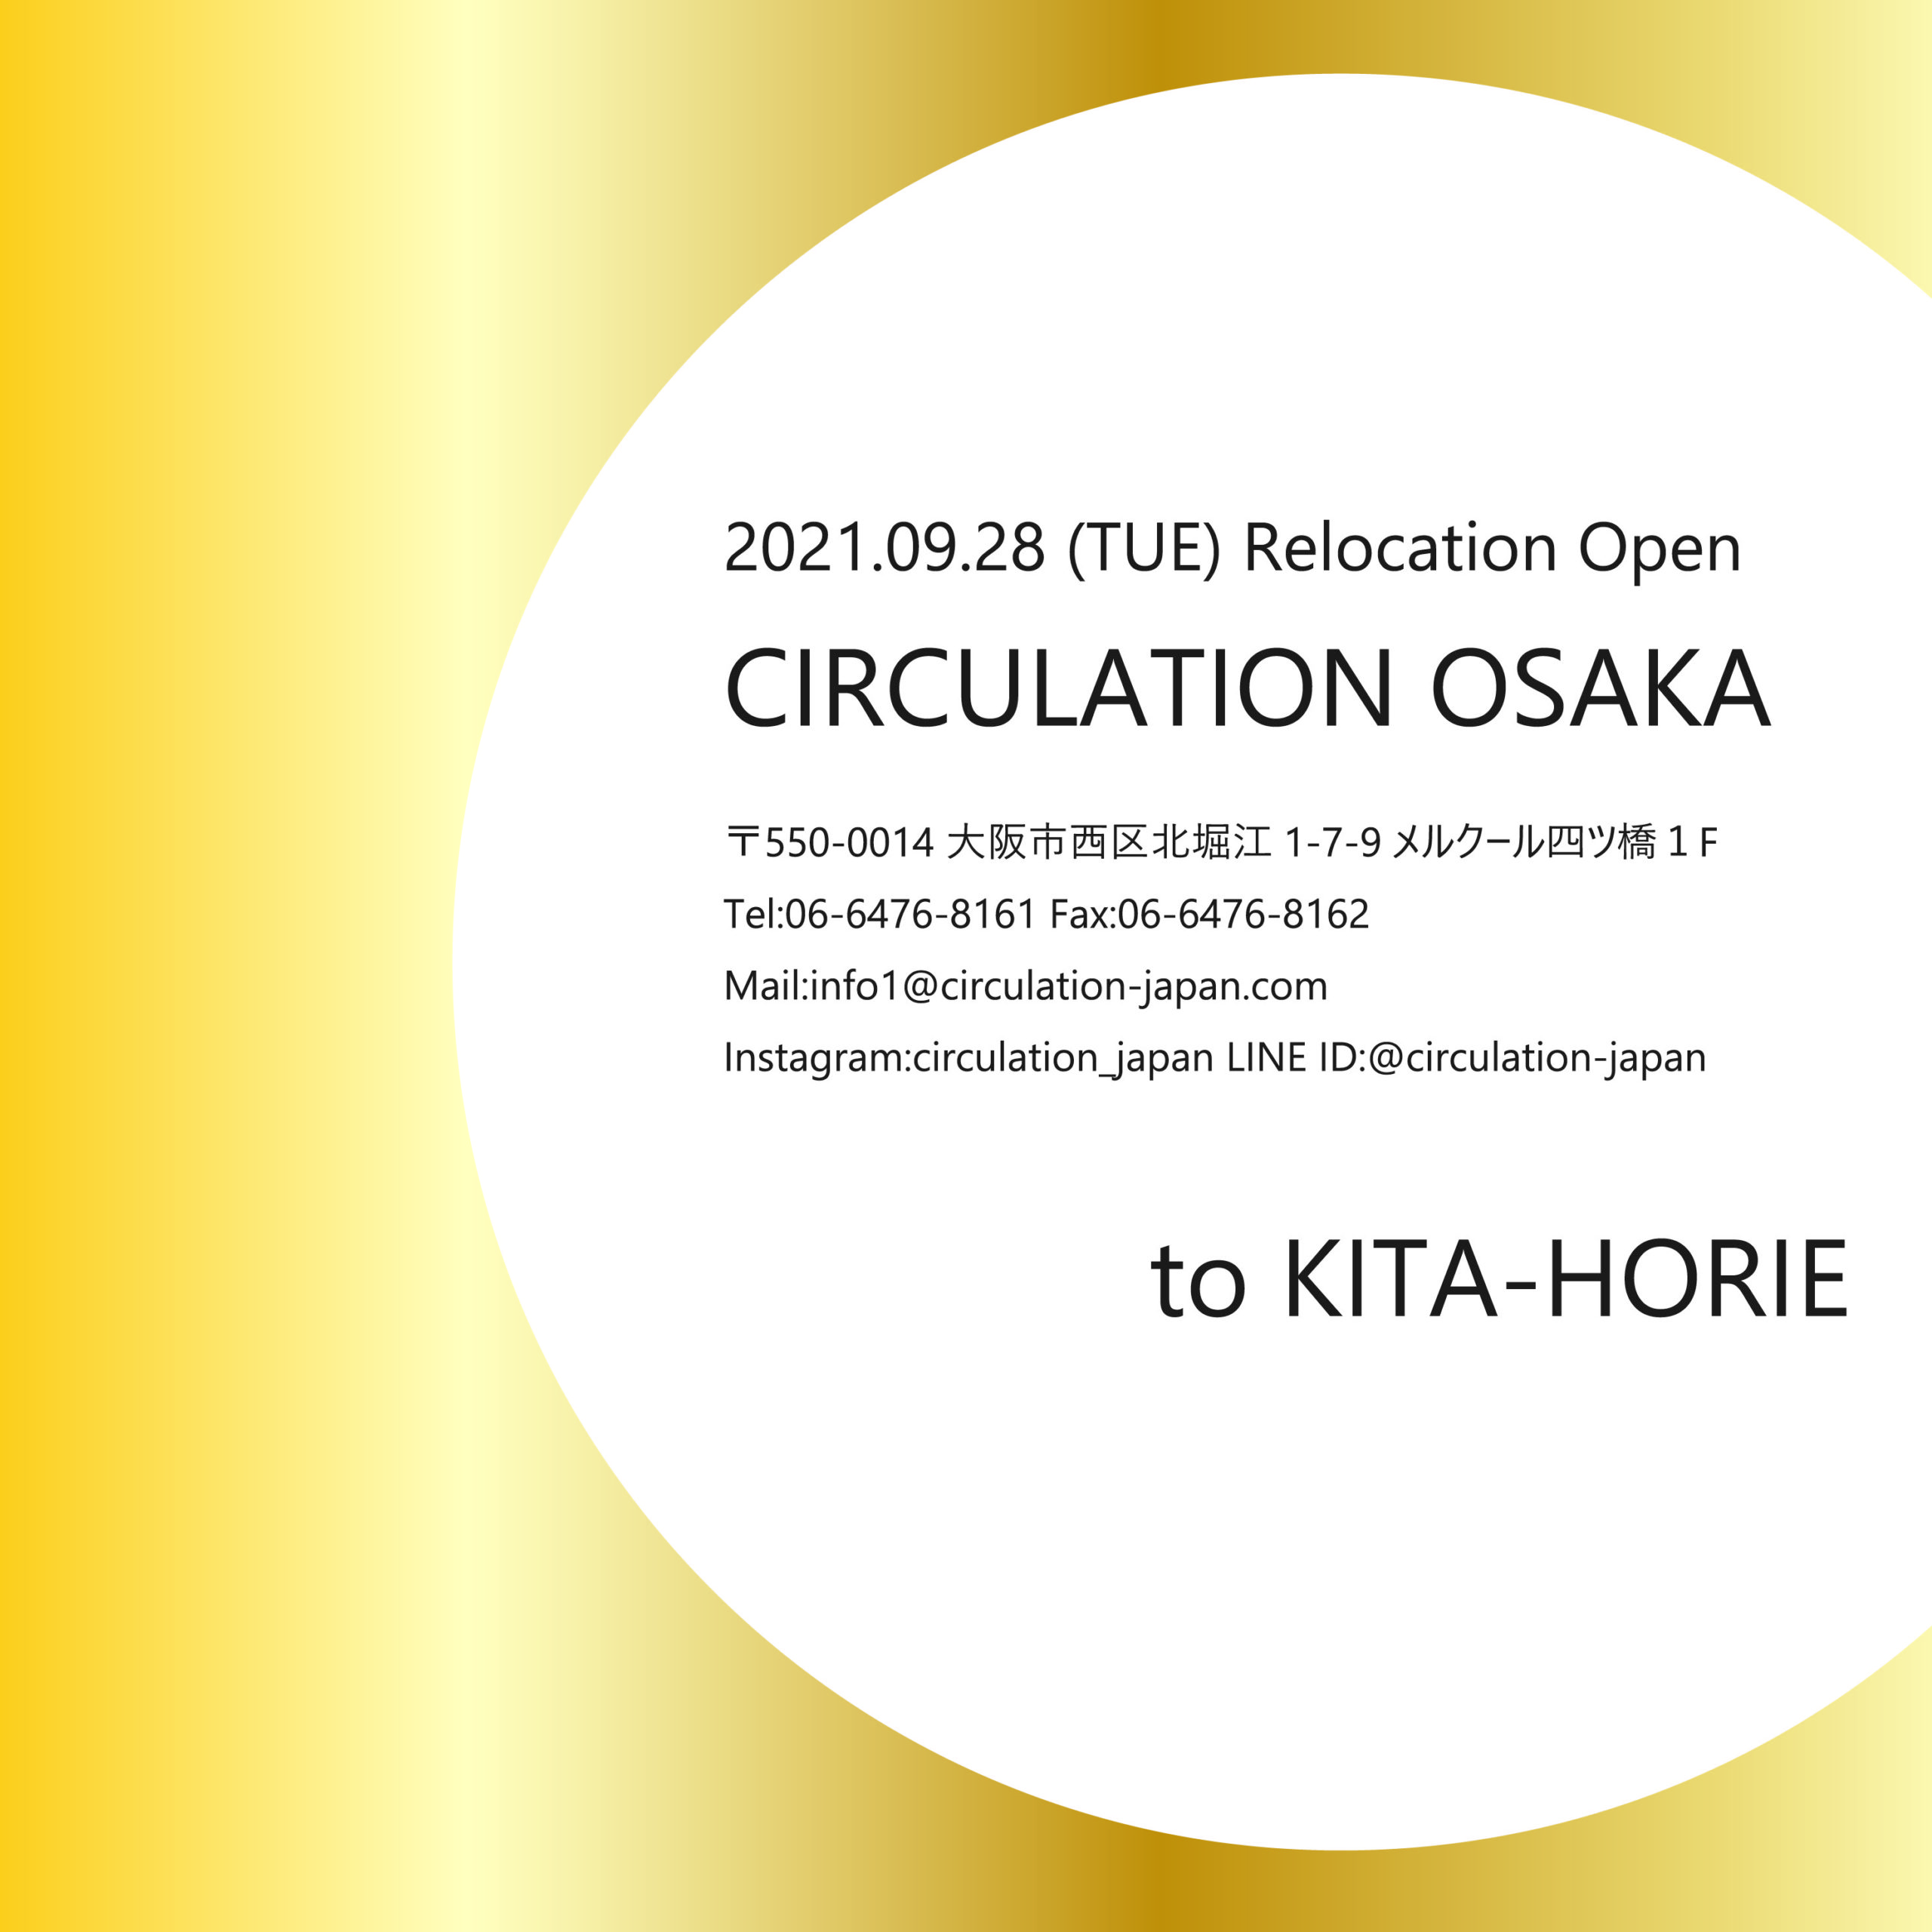 2021,09,28(TUE) 『CIRCULATION OSAKA』Relocation Open to Kitahorie 株式会社サーキュレーション